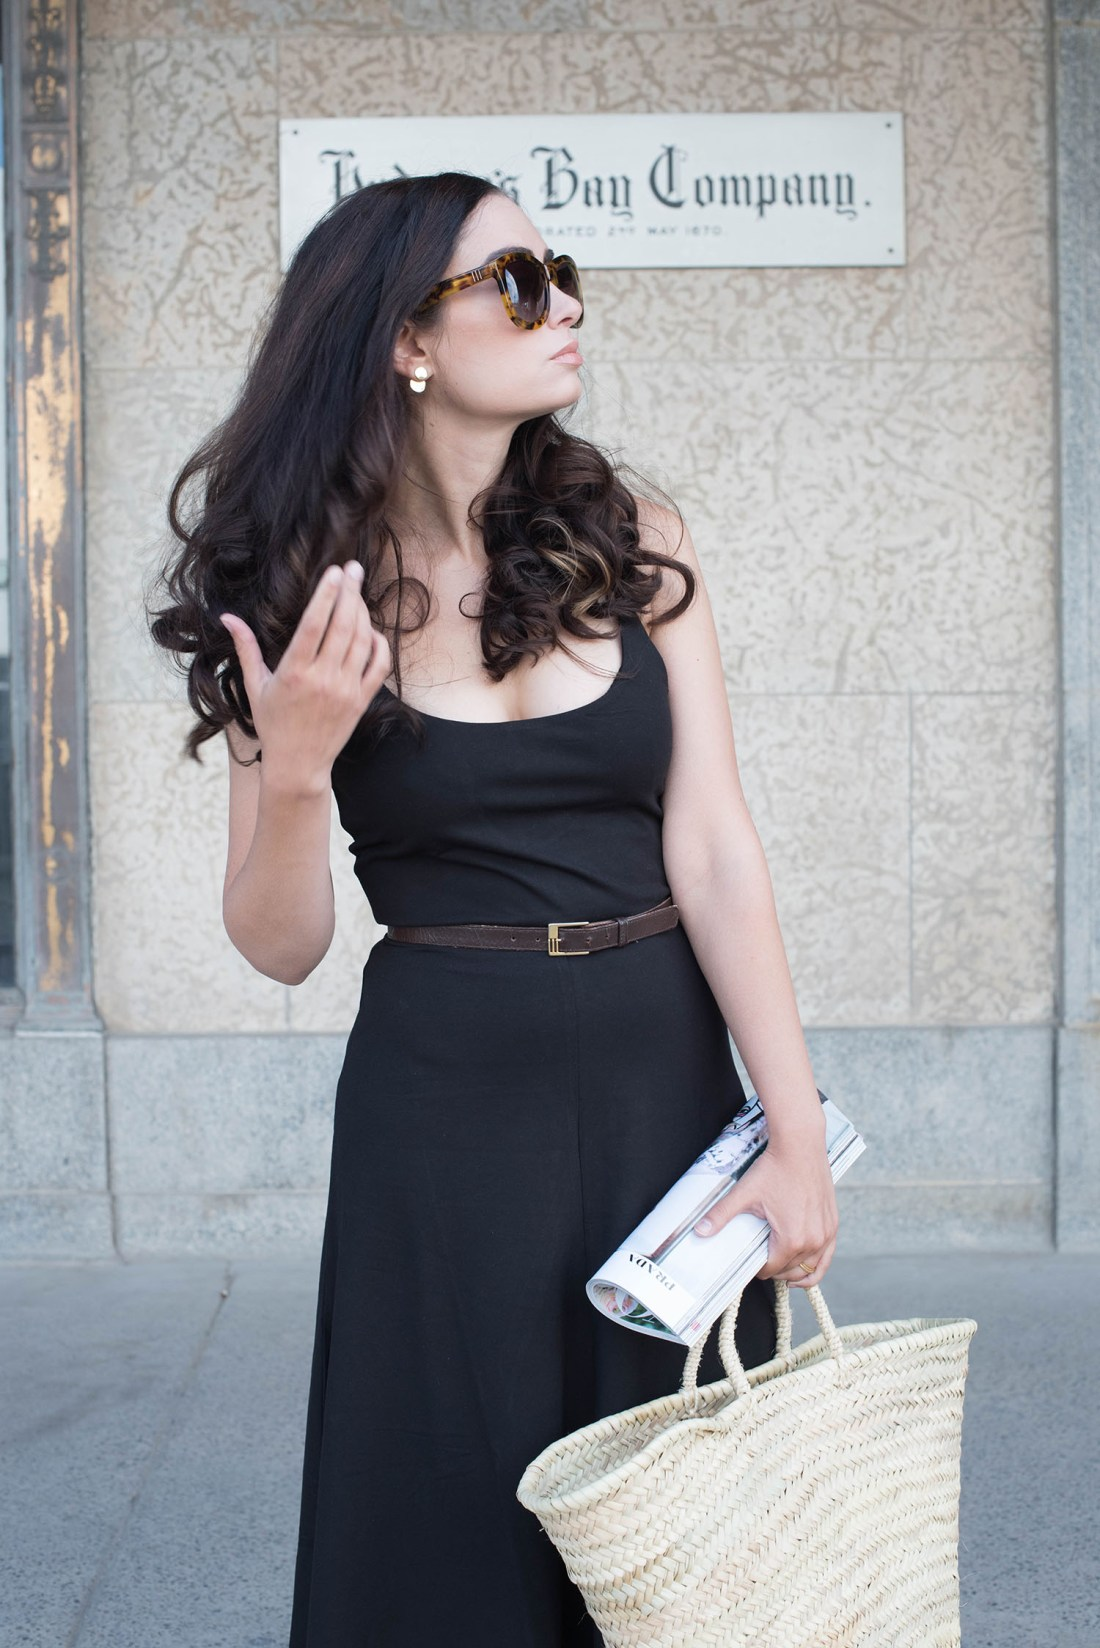 Portrait of style blogger Cee Fardoe of Coco & Vera wearing a Privacy Please dress and Anine Bing Paris sunglasses